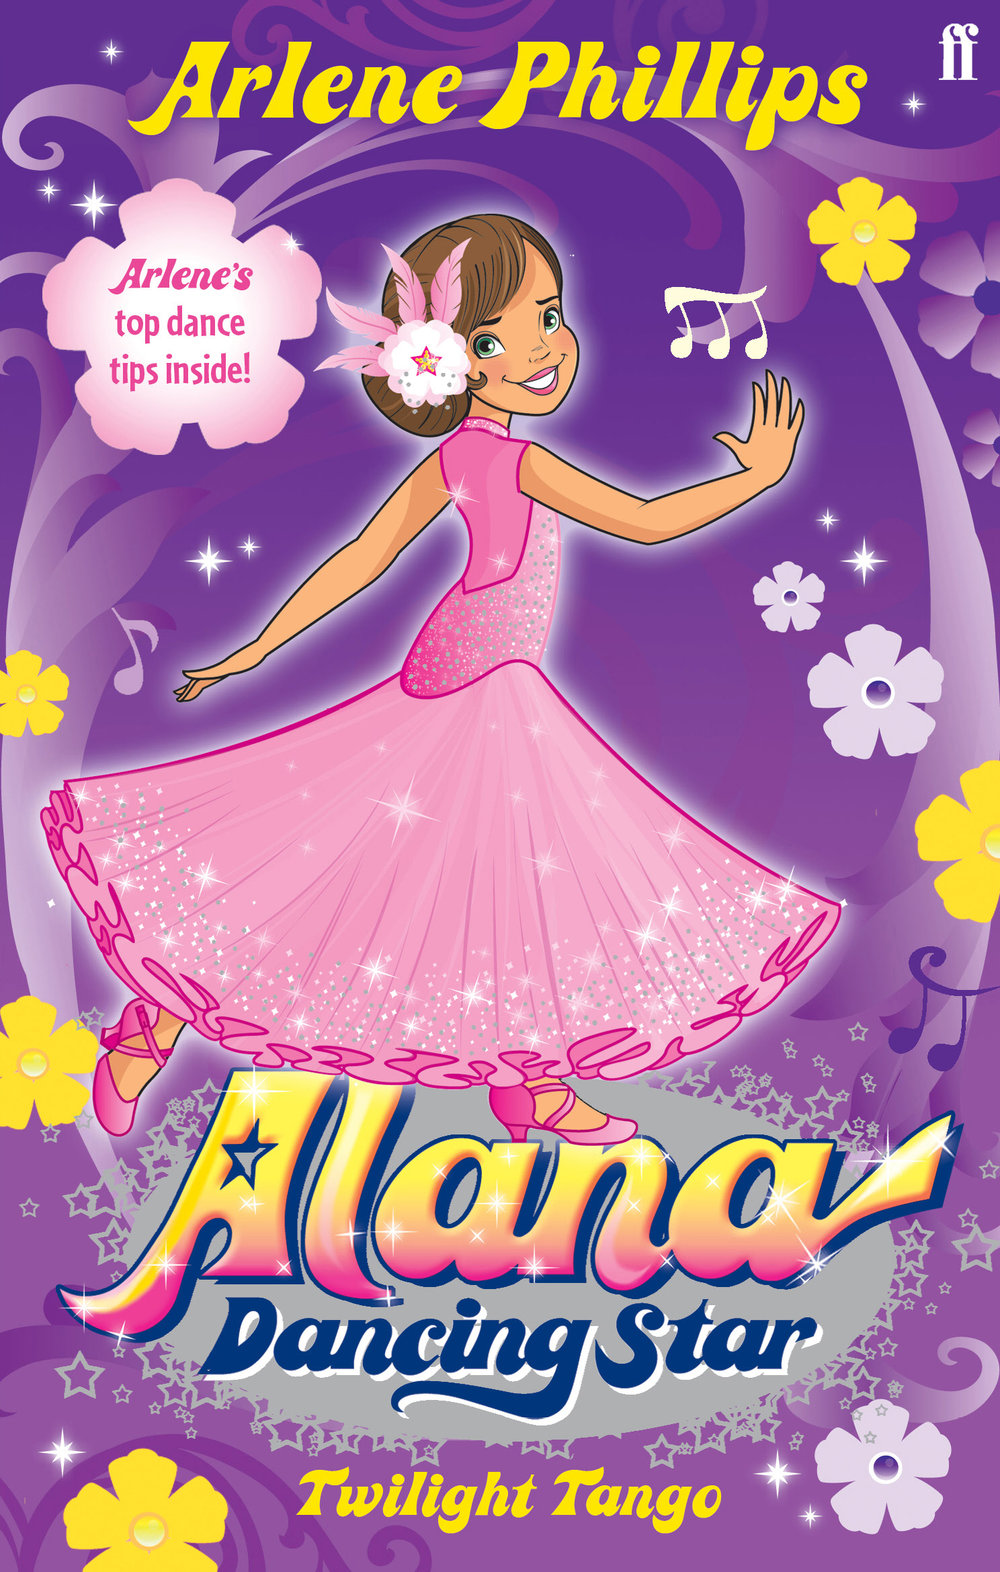 Alana Dancing Star - Twilight Tango.jpg